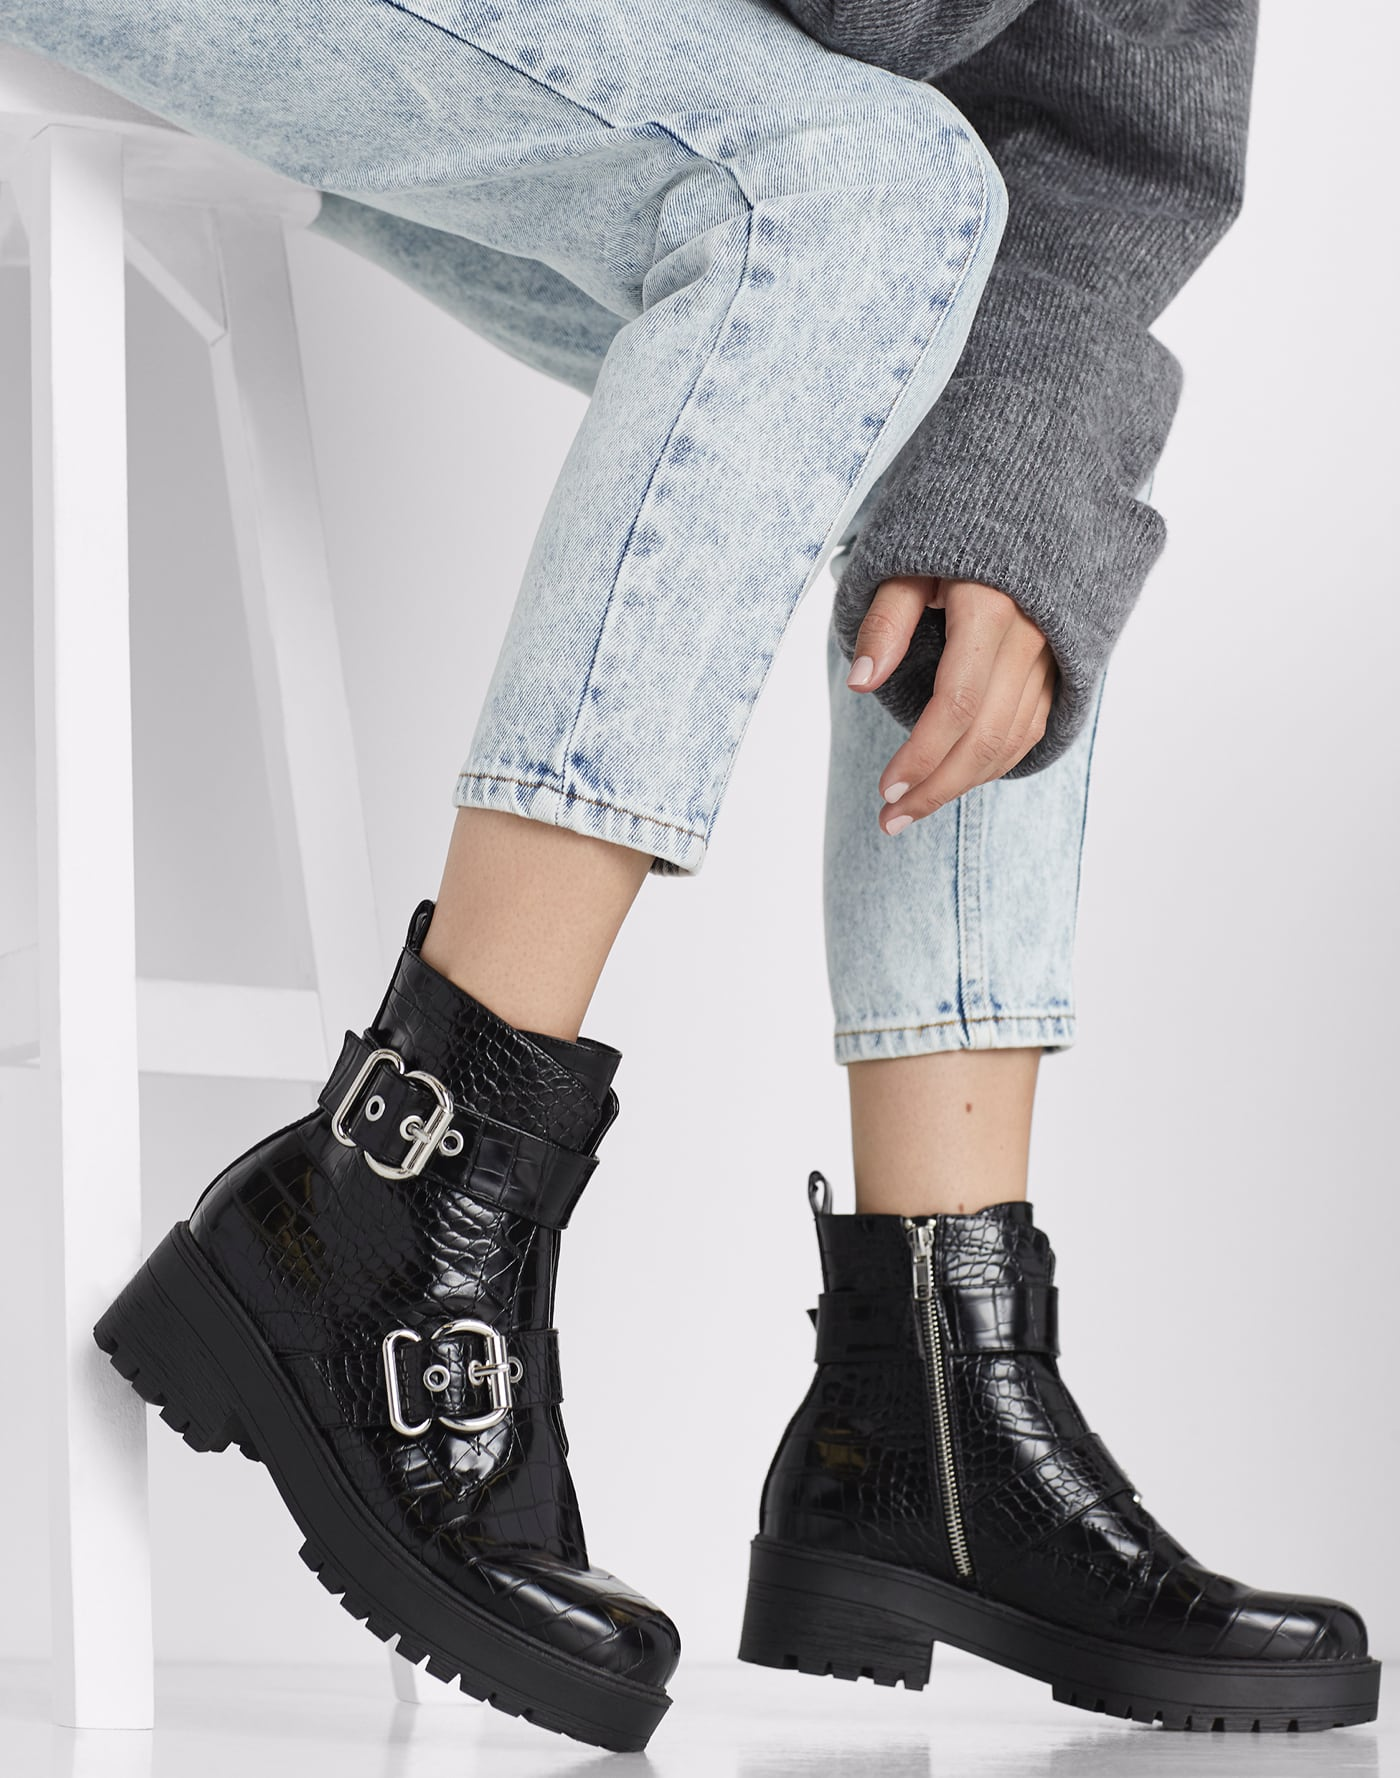 Women's Shoes, Boots, Sandals, Handbags and Accessories